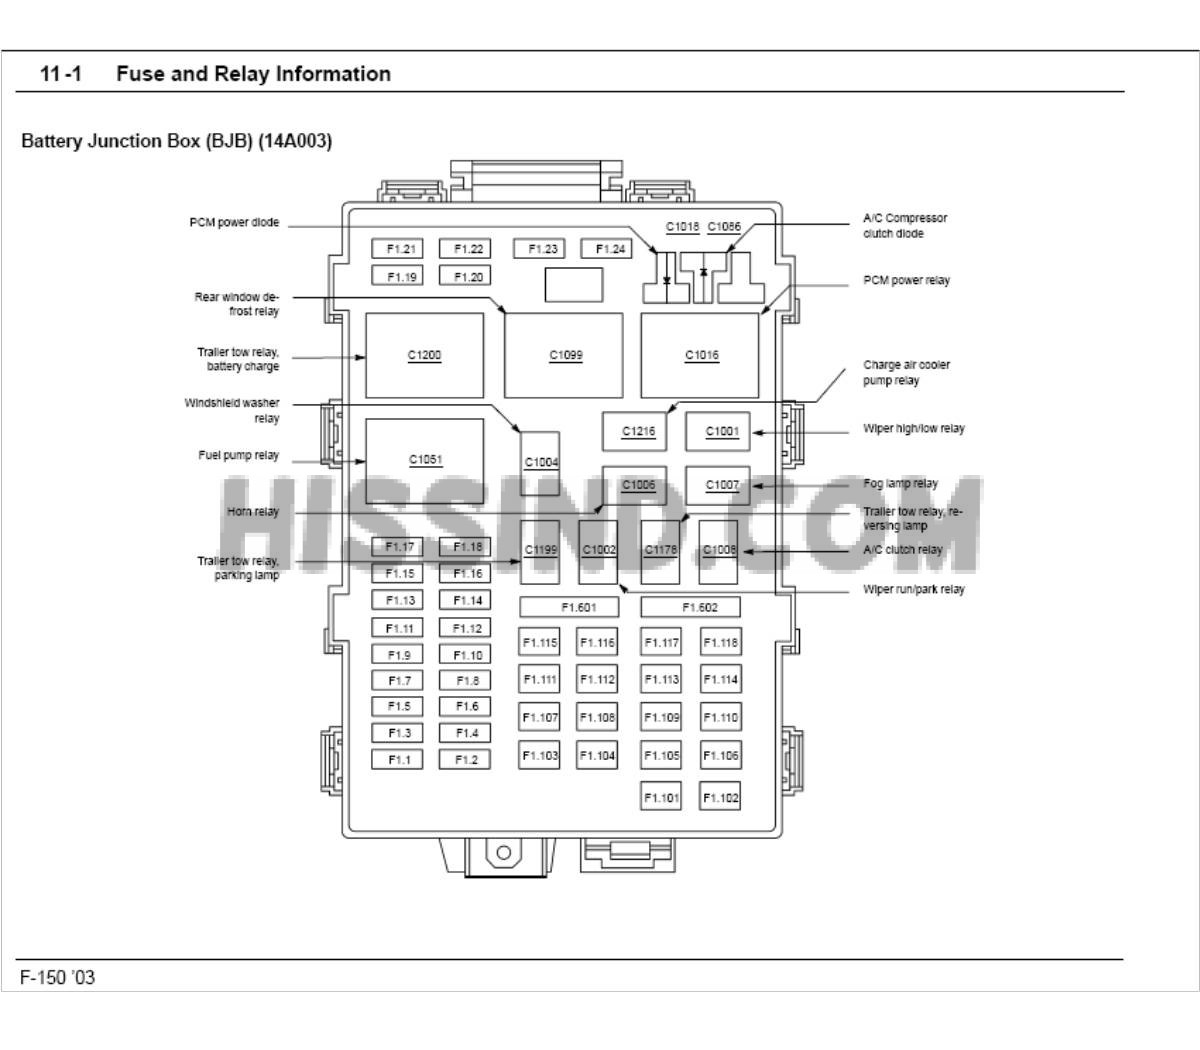 1999 ford mustang fuse box diagram